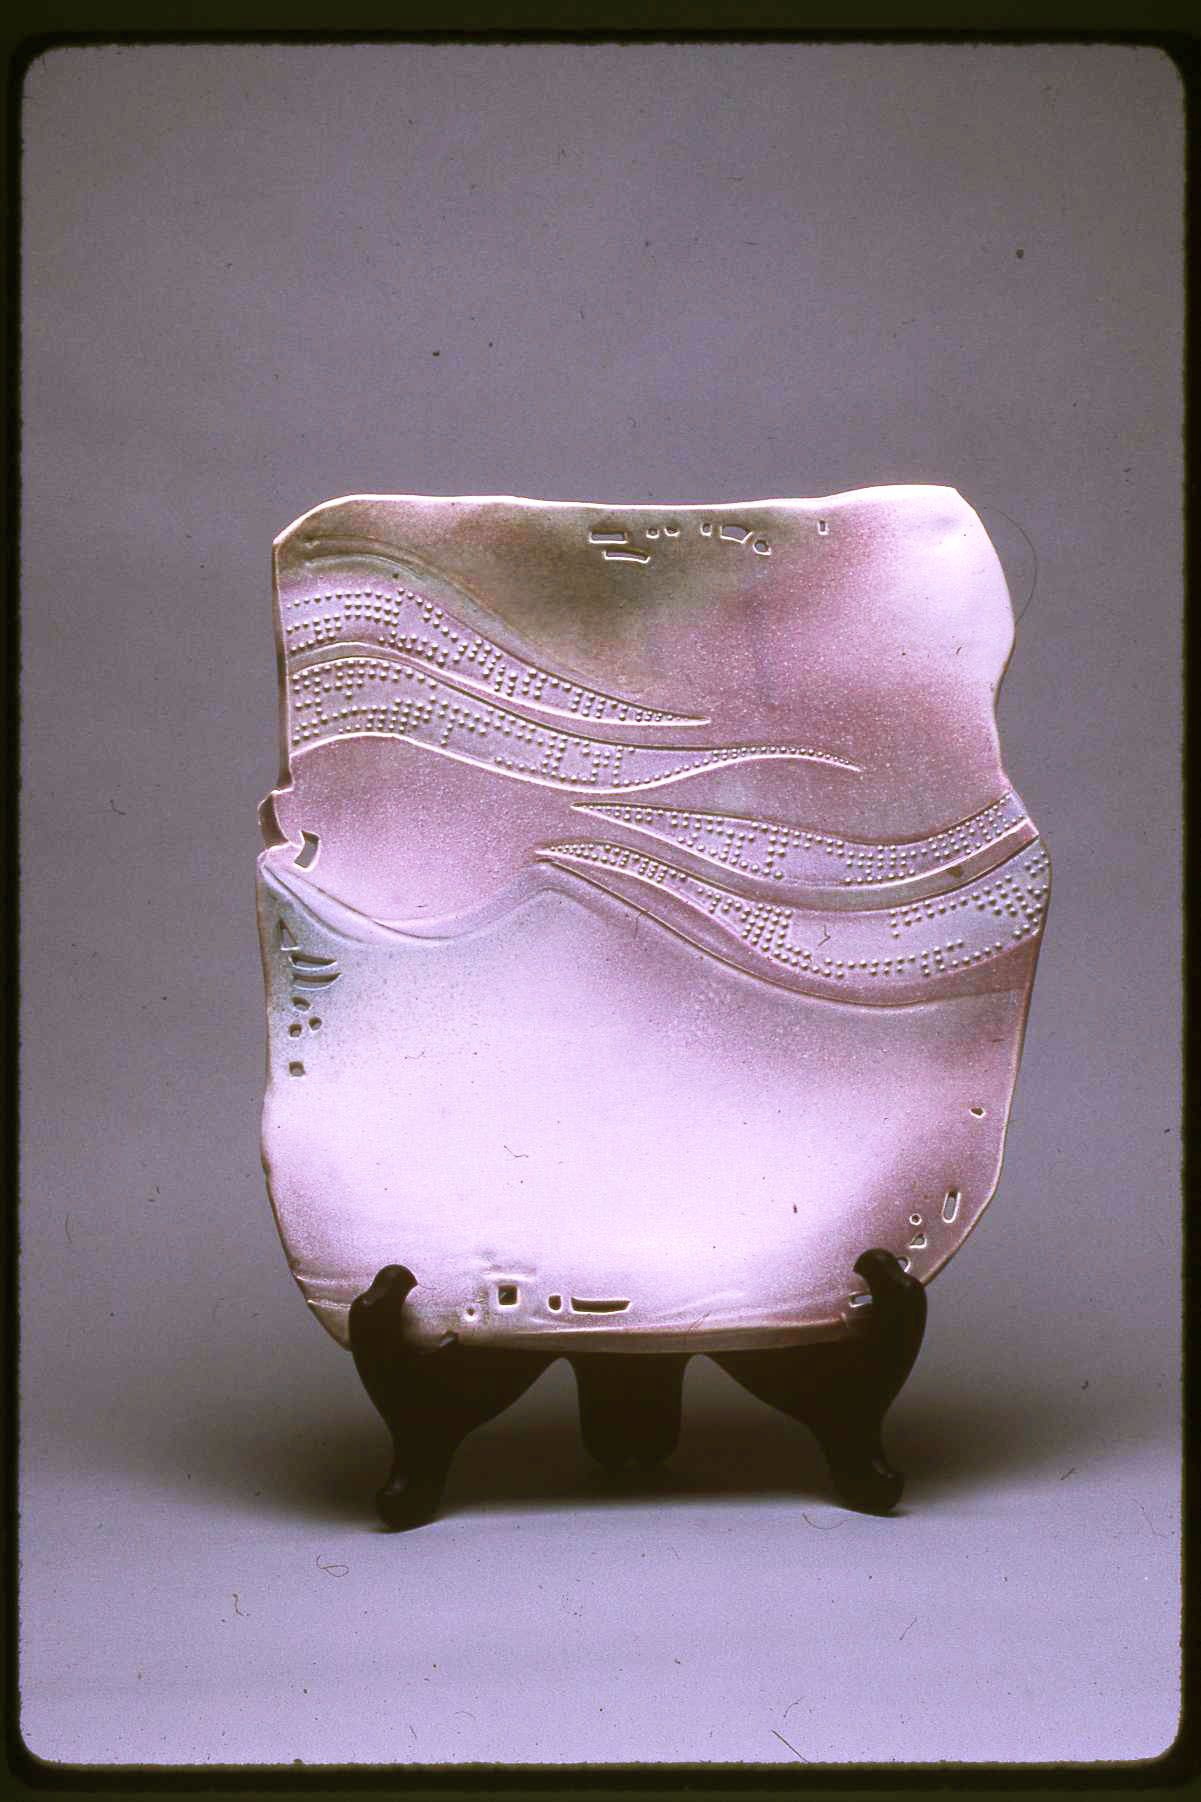 Christy Johnson - Slab wall piece; textured and slip trailed; egg-shell matt glaze over porcelain; airbrushed oxides; reduction fired.